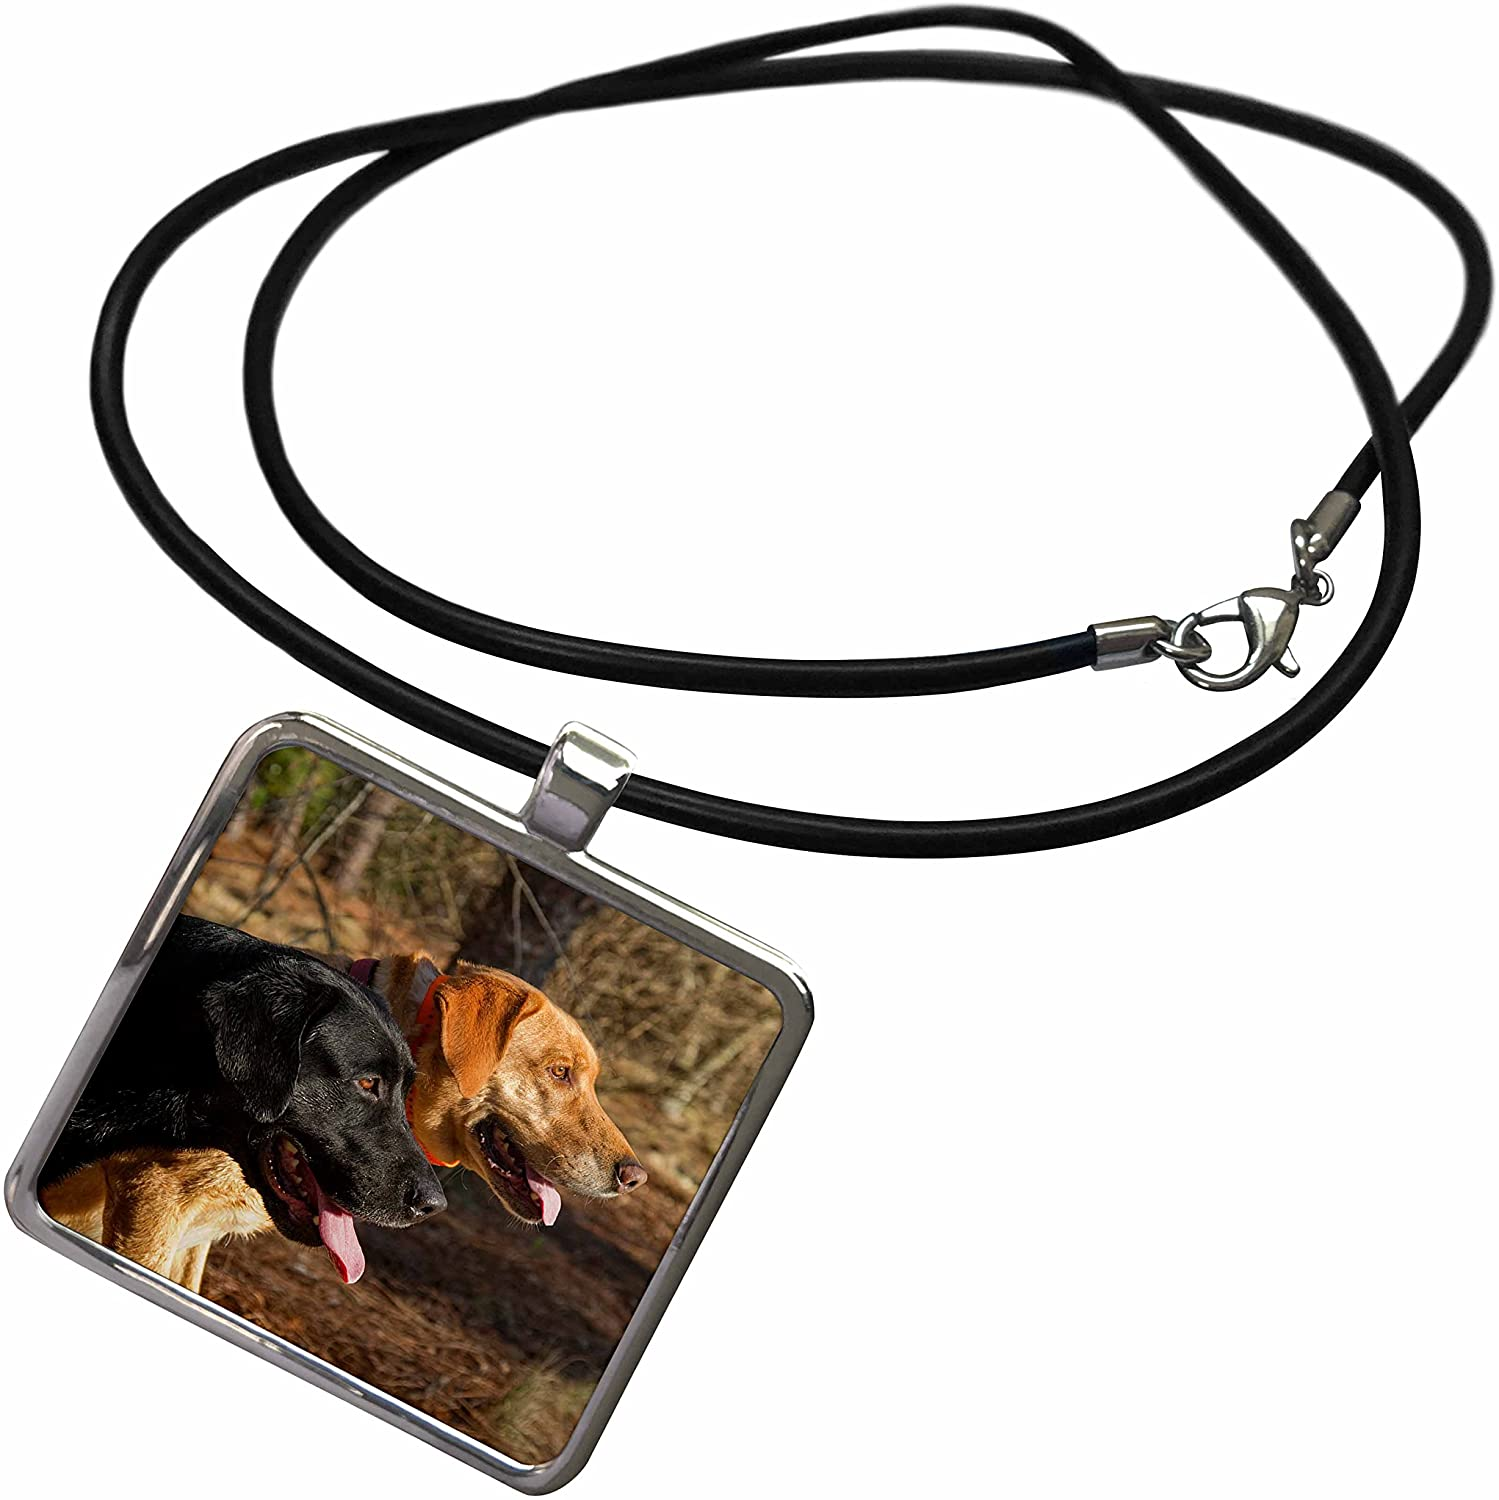 3dRose Susan Kjellsen Photography - Dogs - One Black and one Yellow Labrador Retriever - Necklace with Rectangle Pendant (ncl_280230)